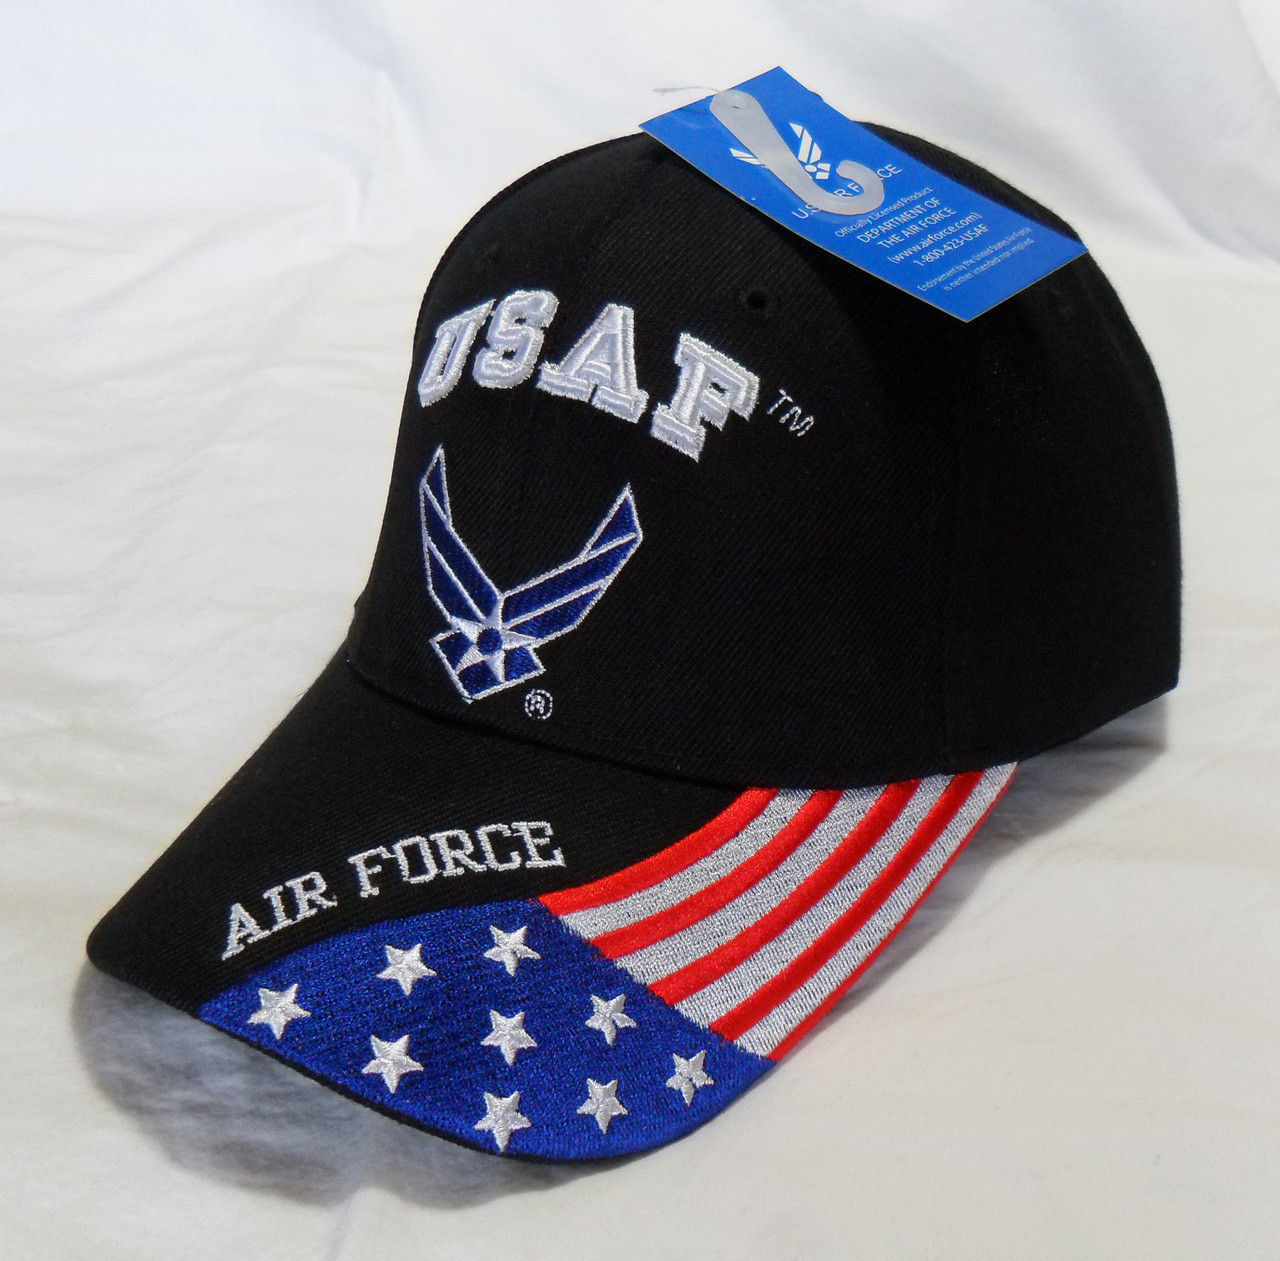 force embroidered baseball officially licensed seal flag cap hat current